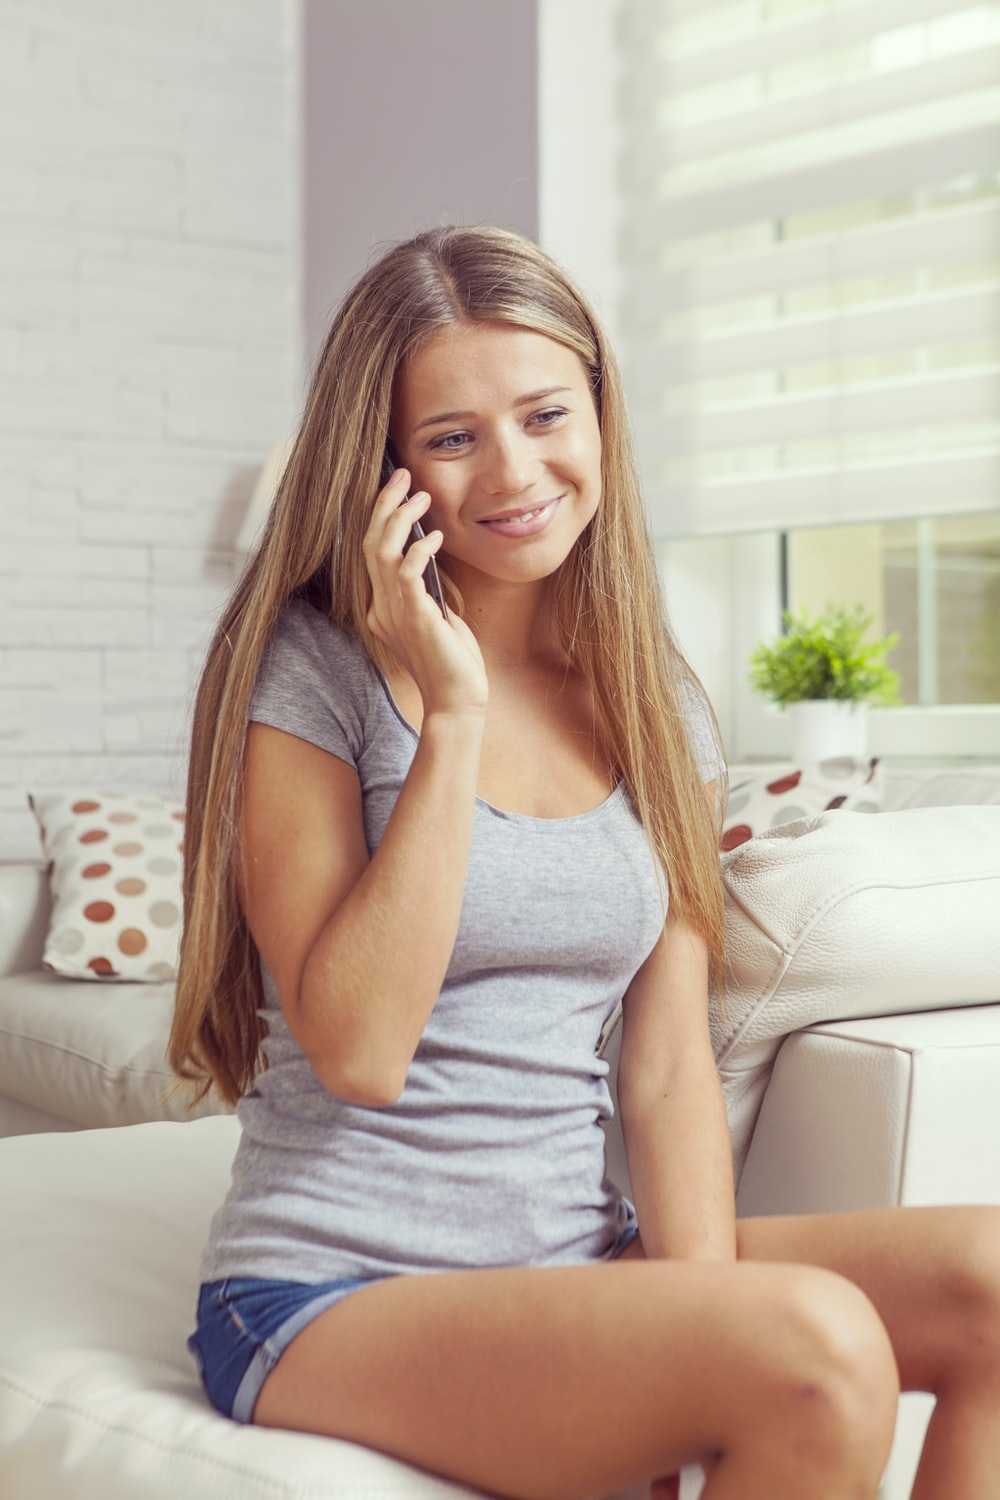 woman sitting on sofa while holding smartphone